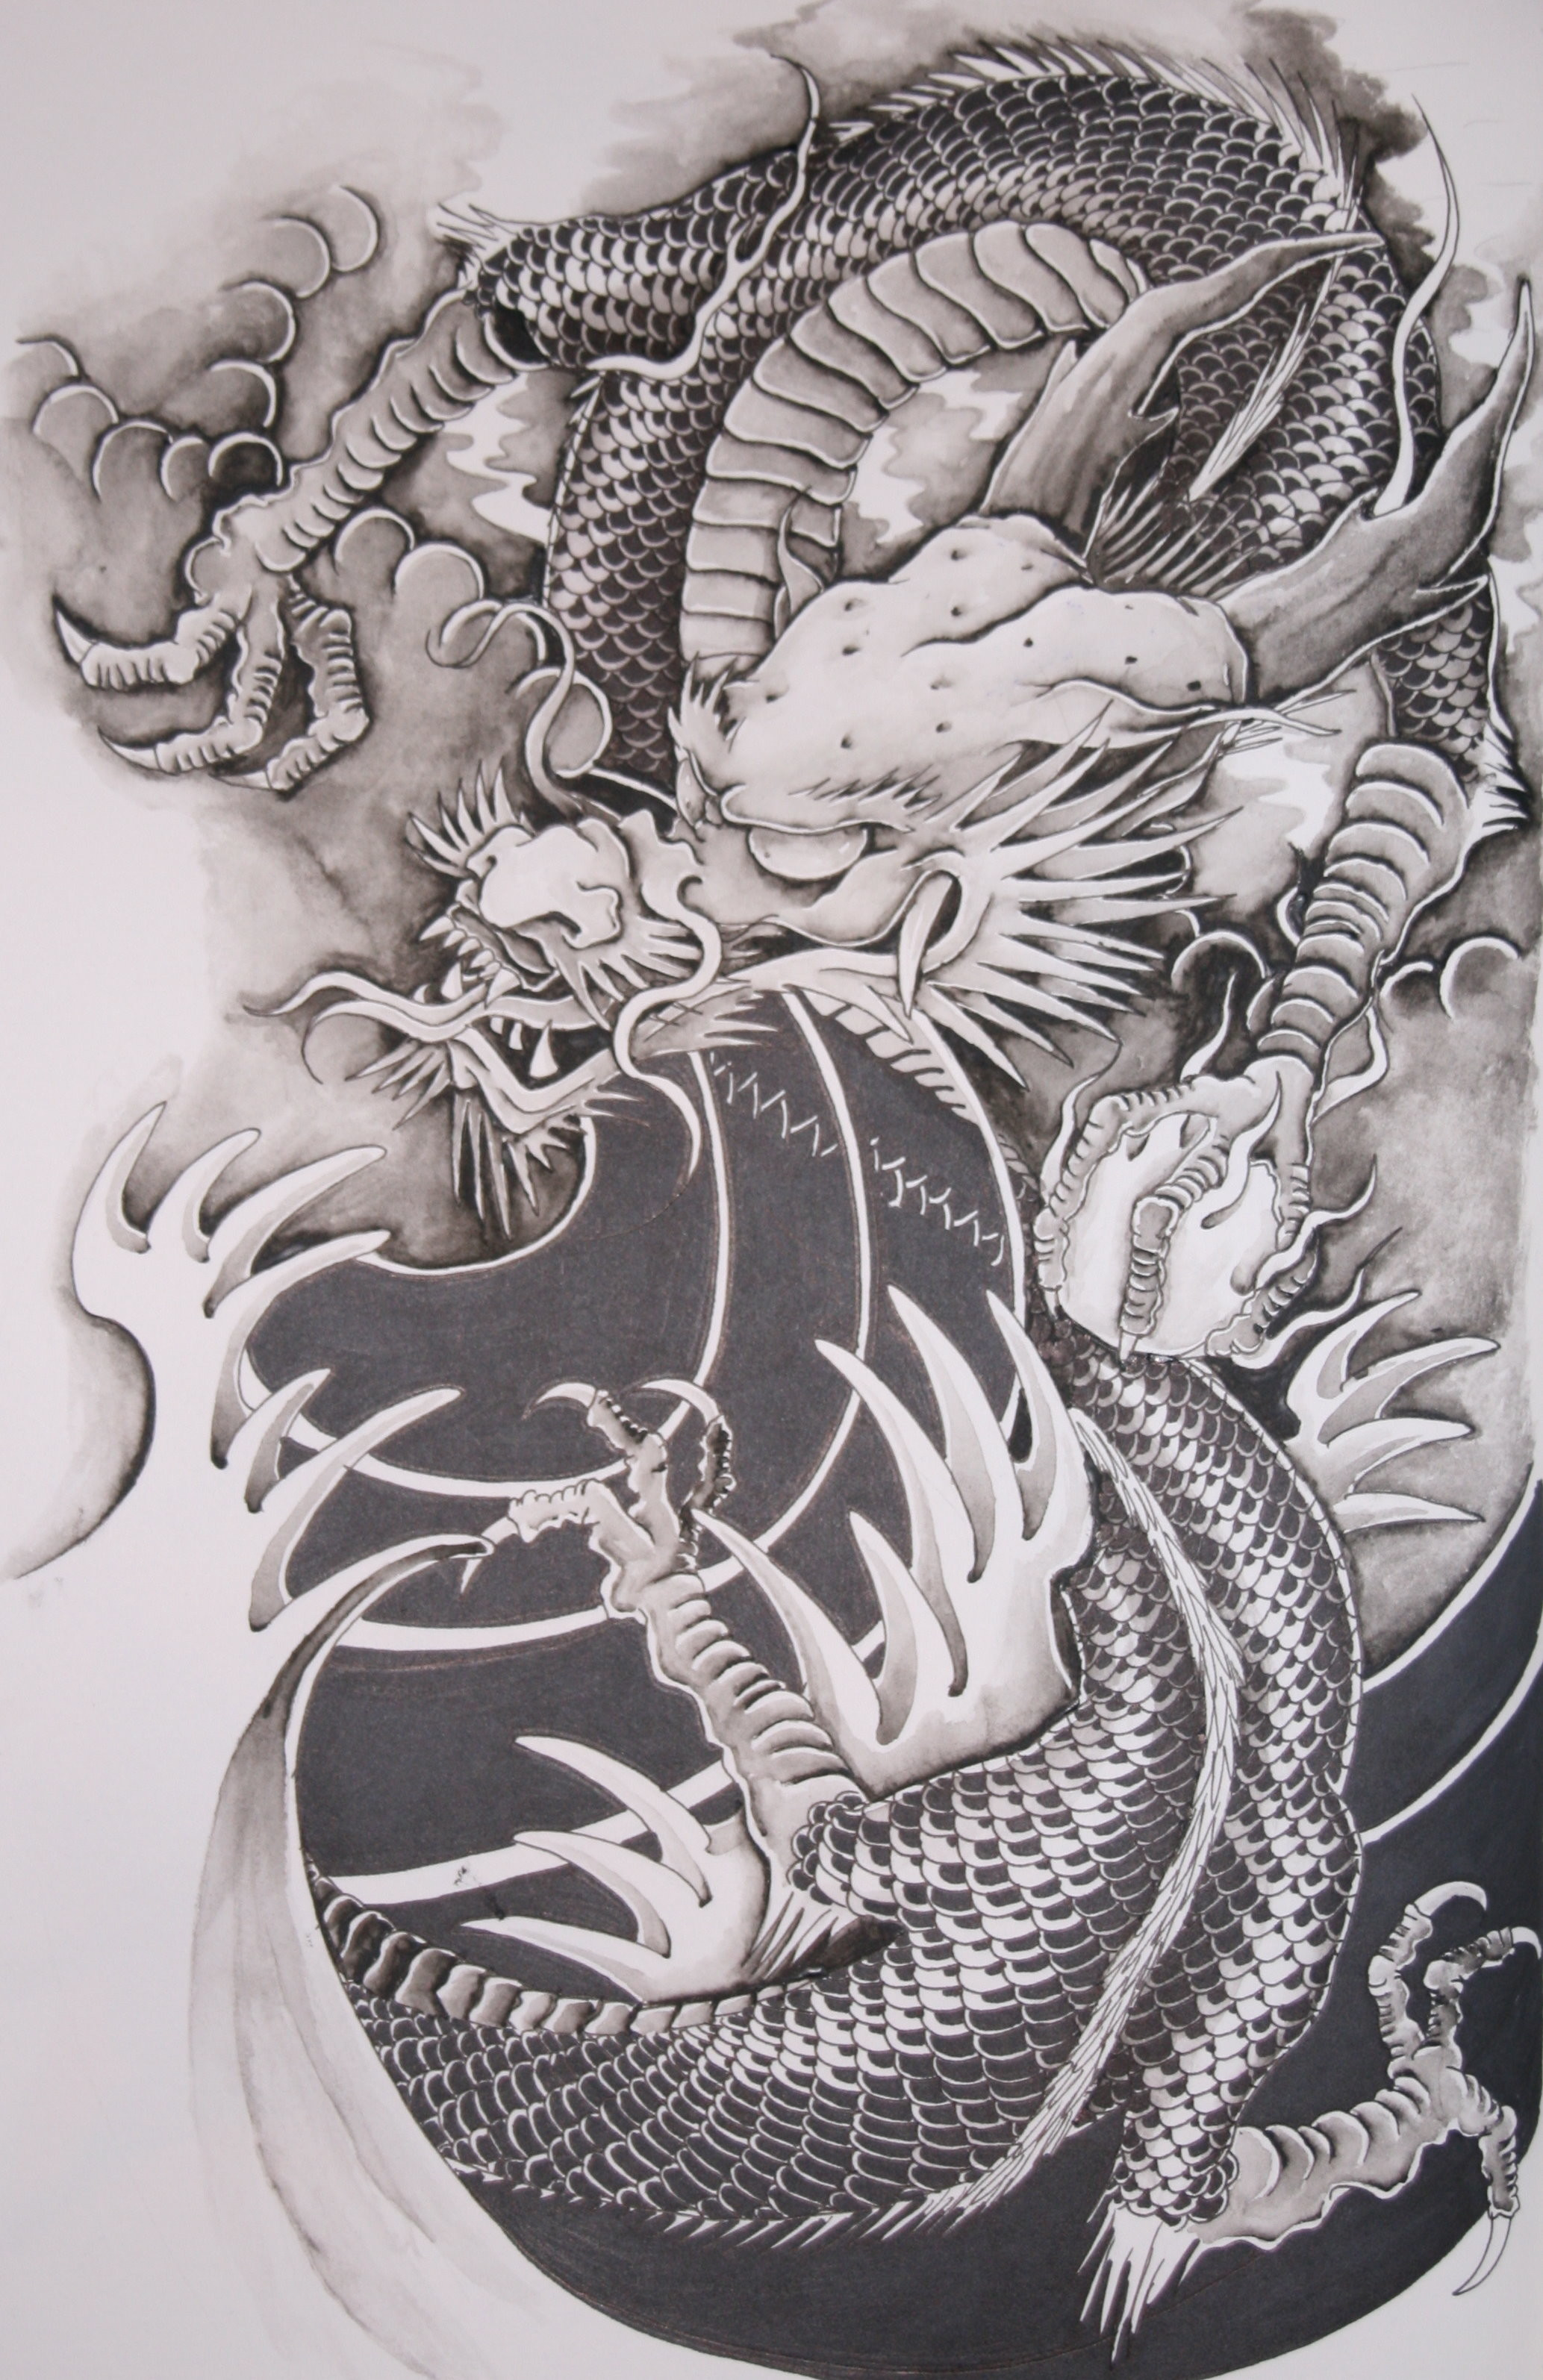 Res: 2067x3189, Chinese Dragon Tattoo wallpaper 82665